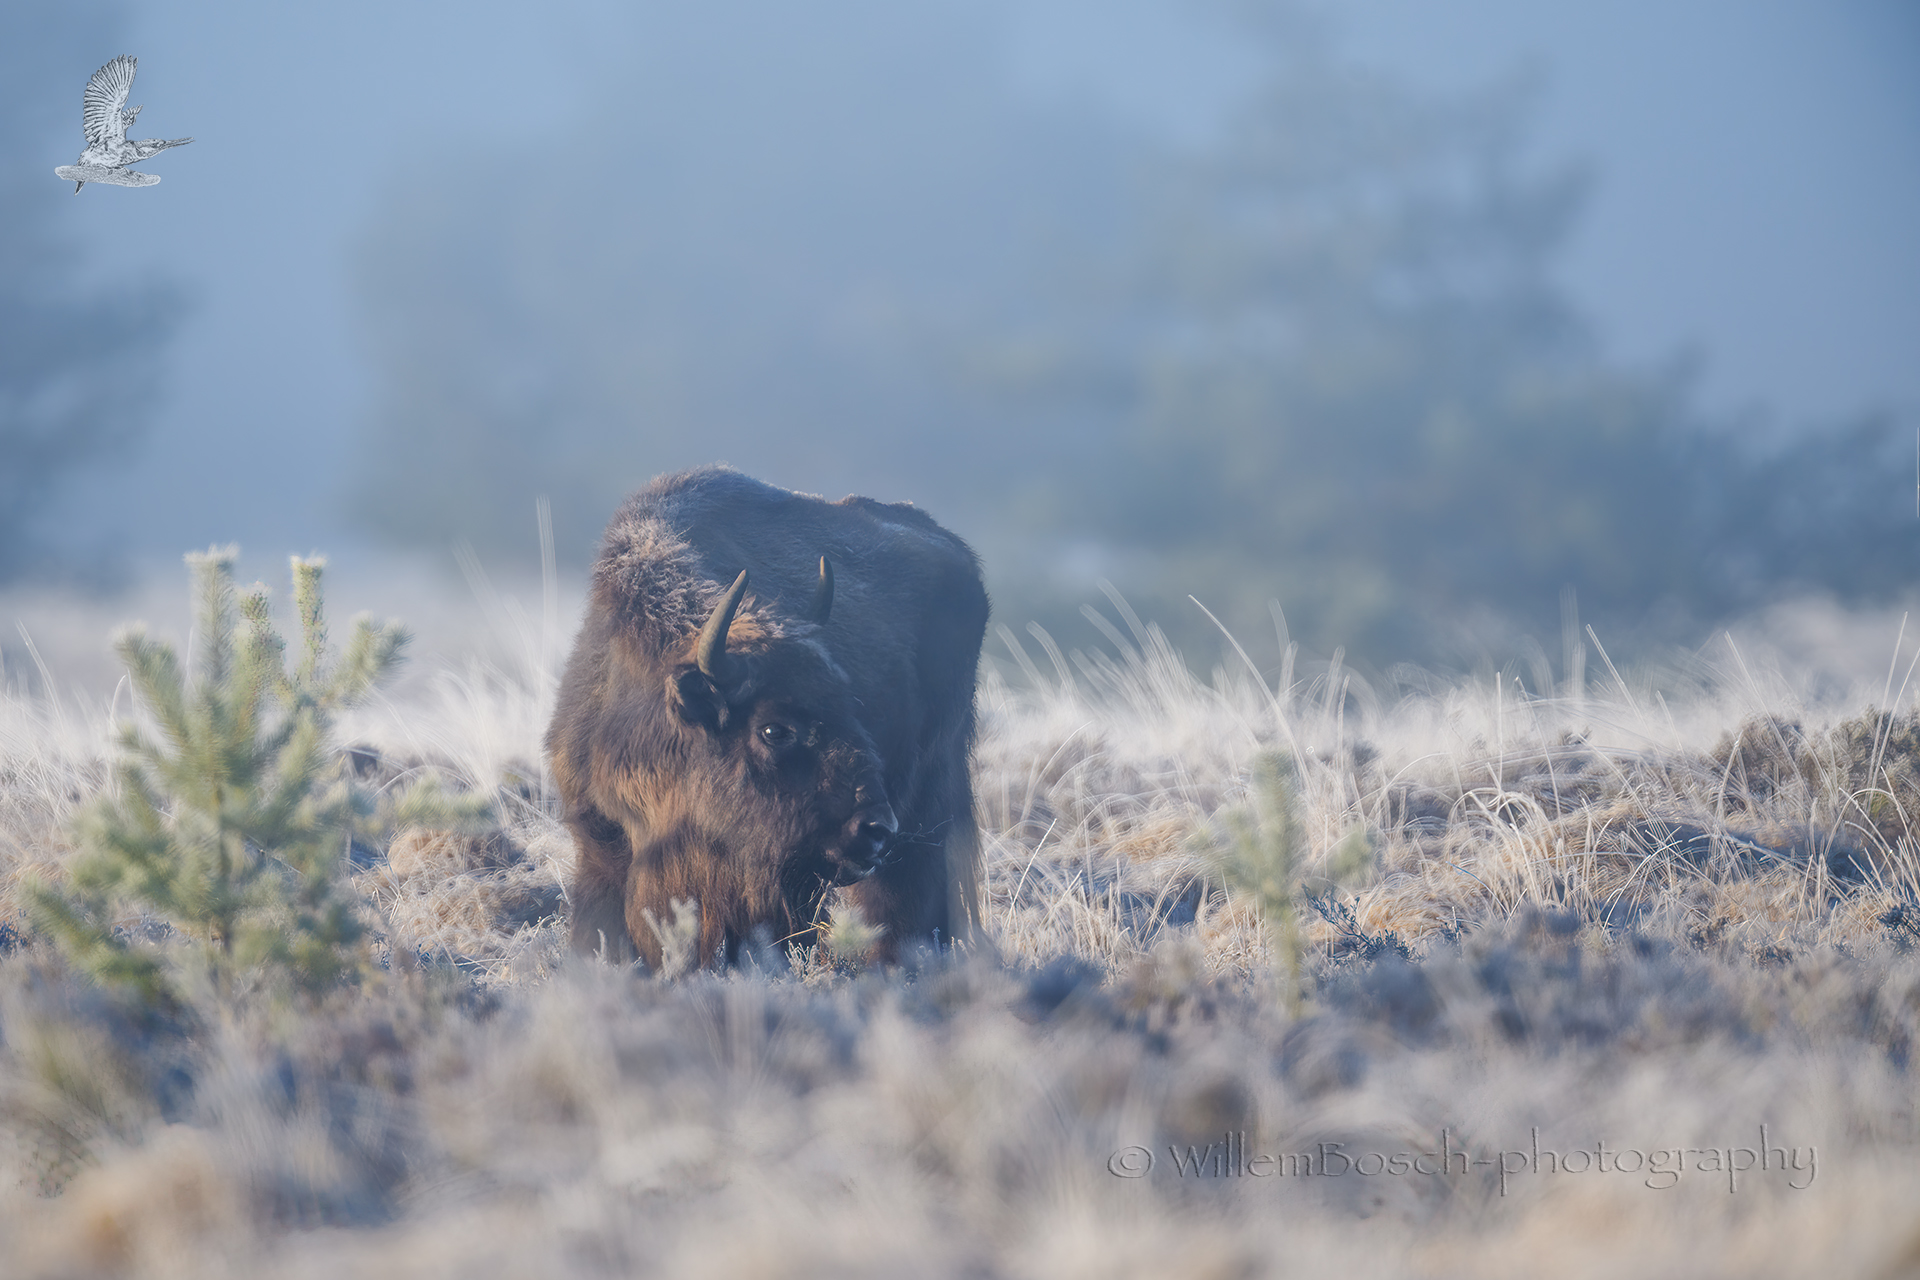 Wisent_Bison-bonasus_1920_ND51386